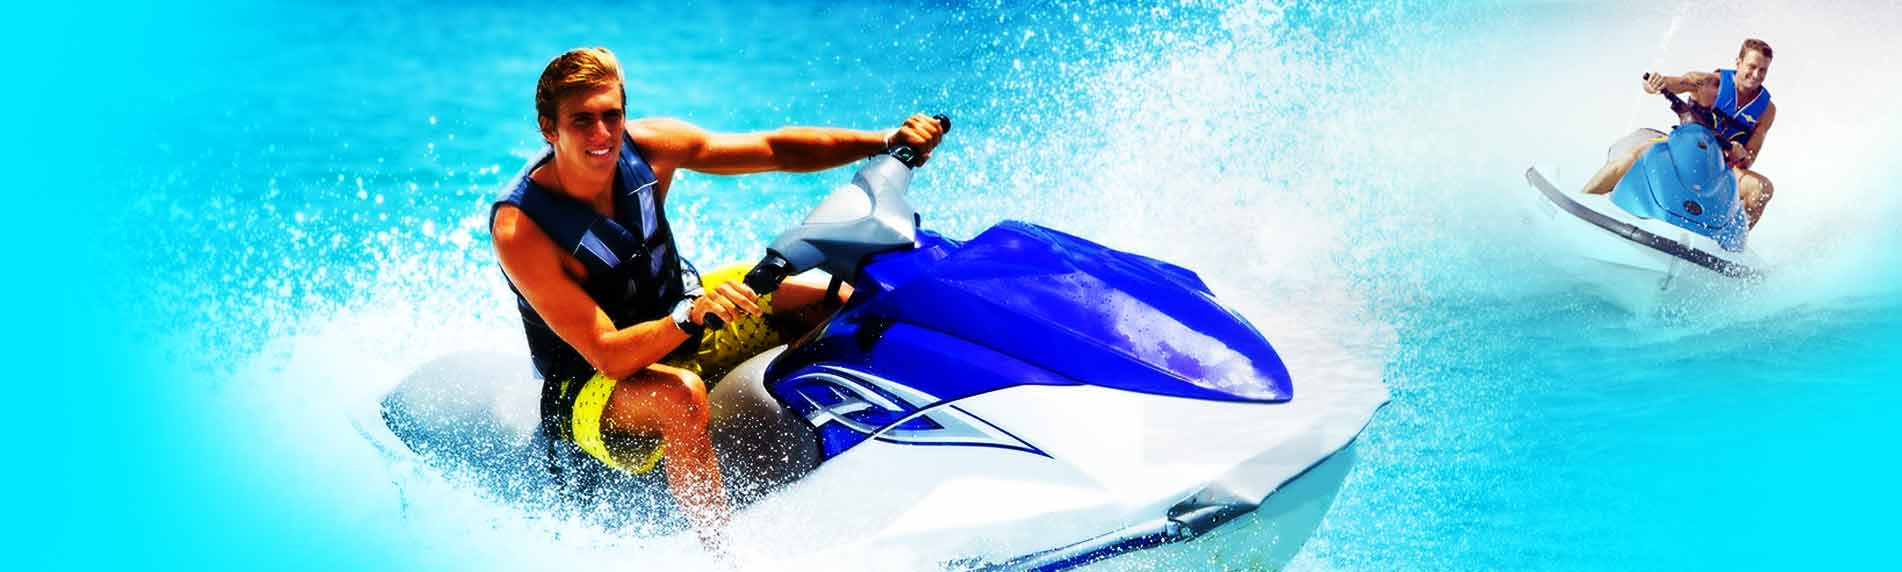 jet ski dubai tour adventure